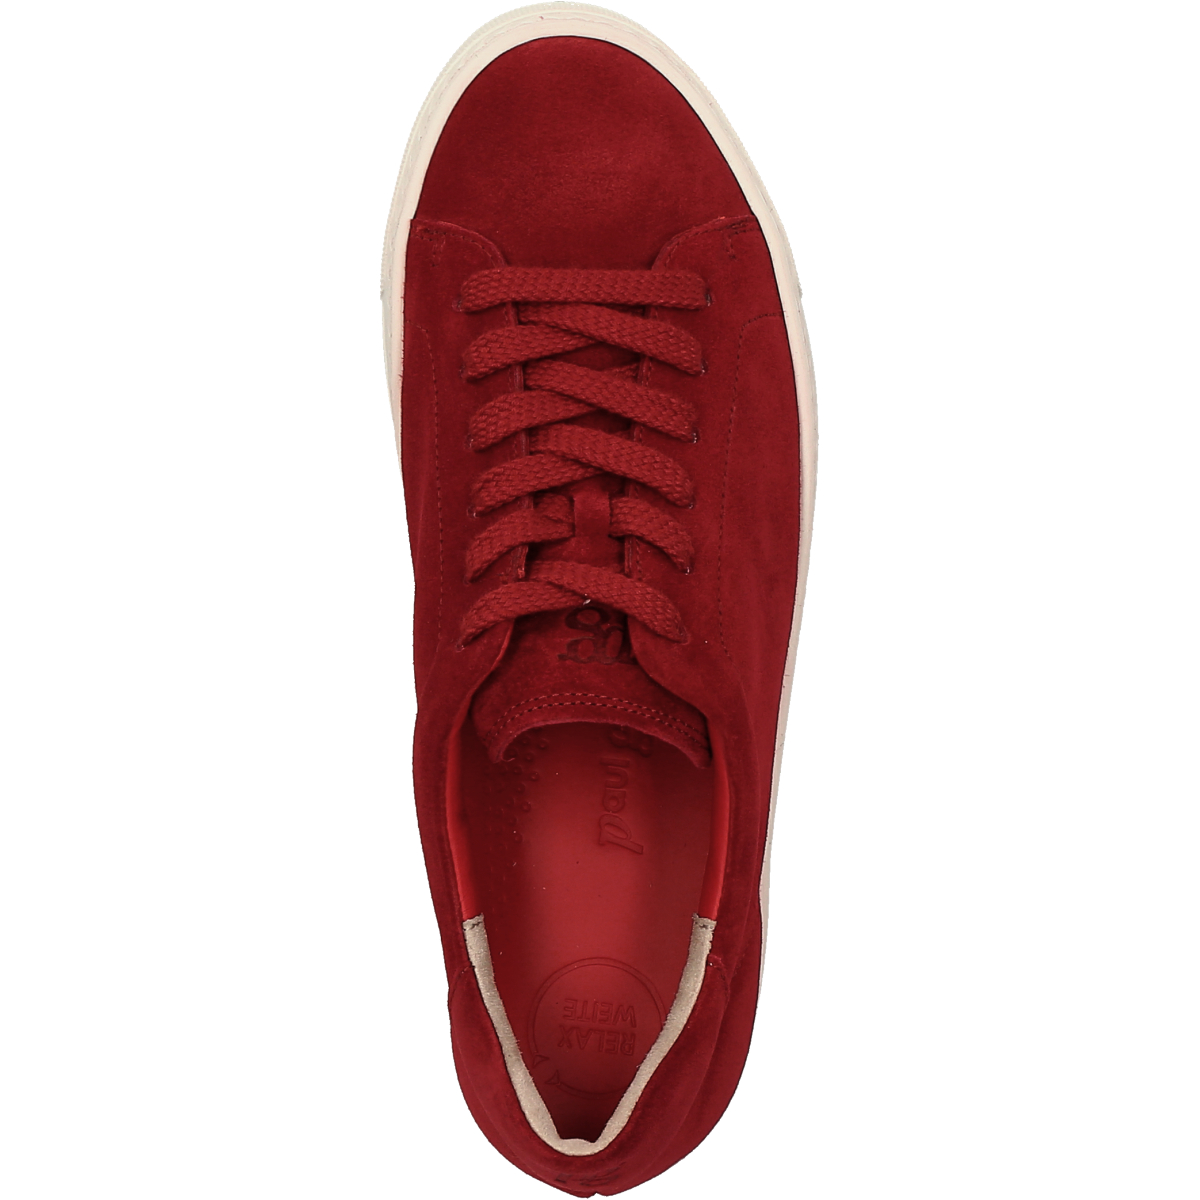 Lace ups in red 4707 034 Buy in Paul Green Online Shop